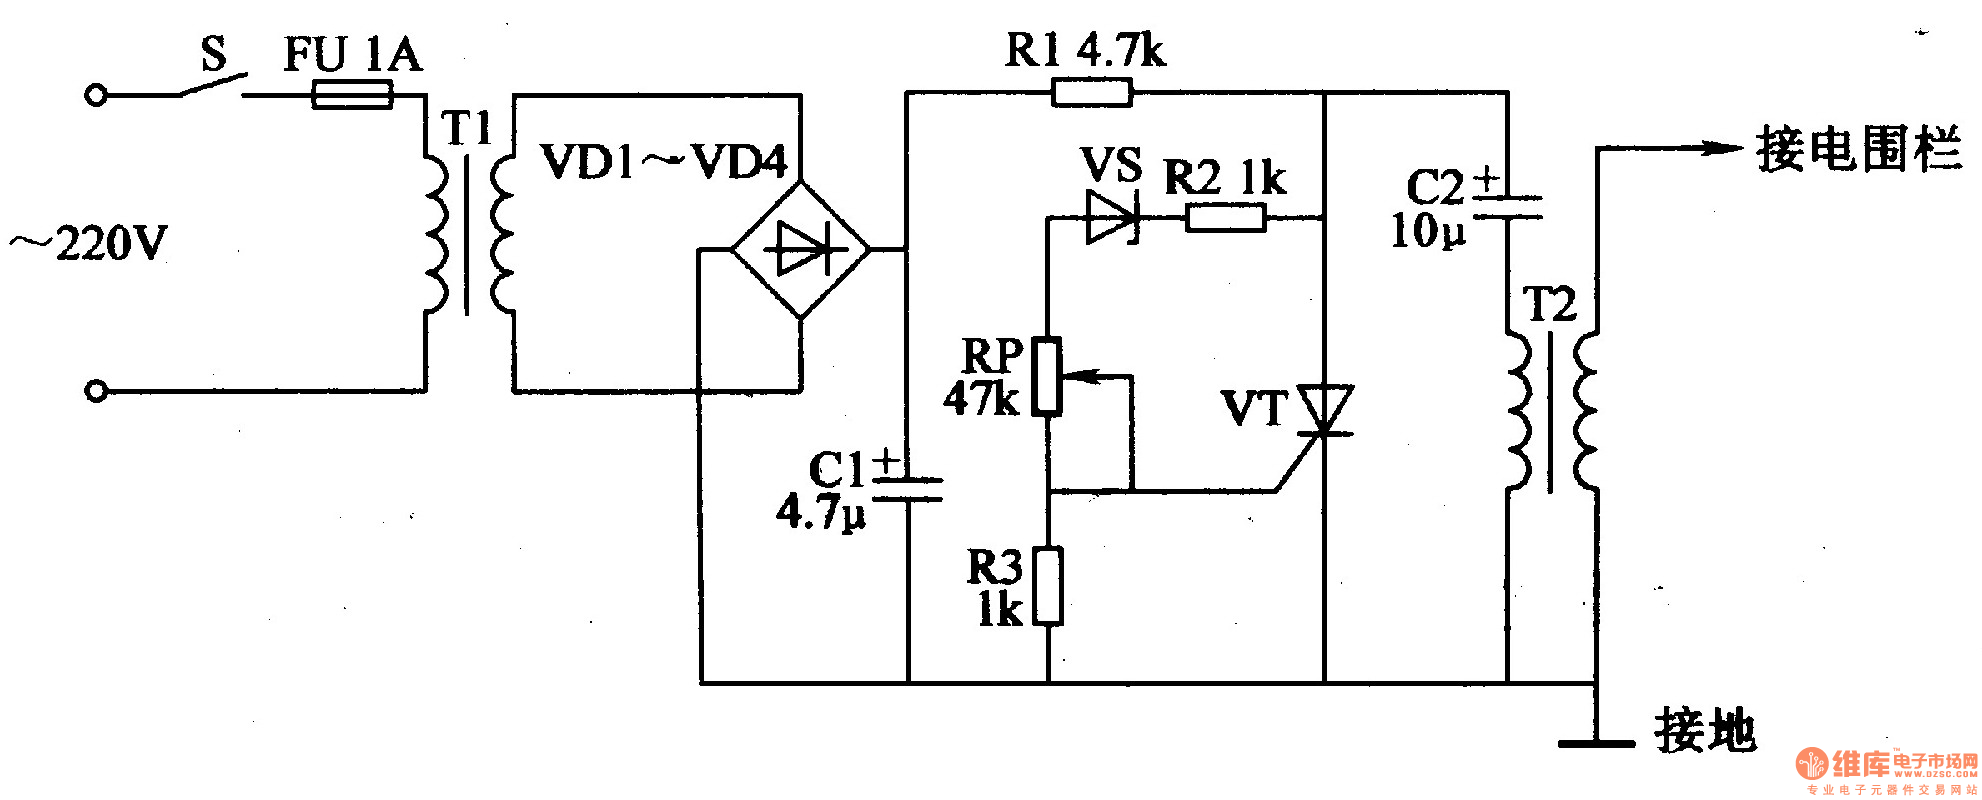 Fence Charger Schematic on gps wiring diagram